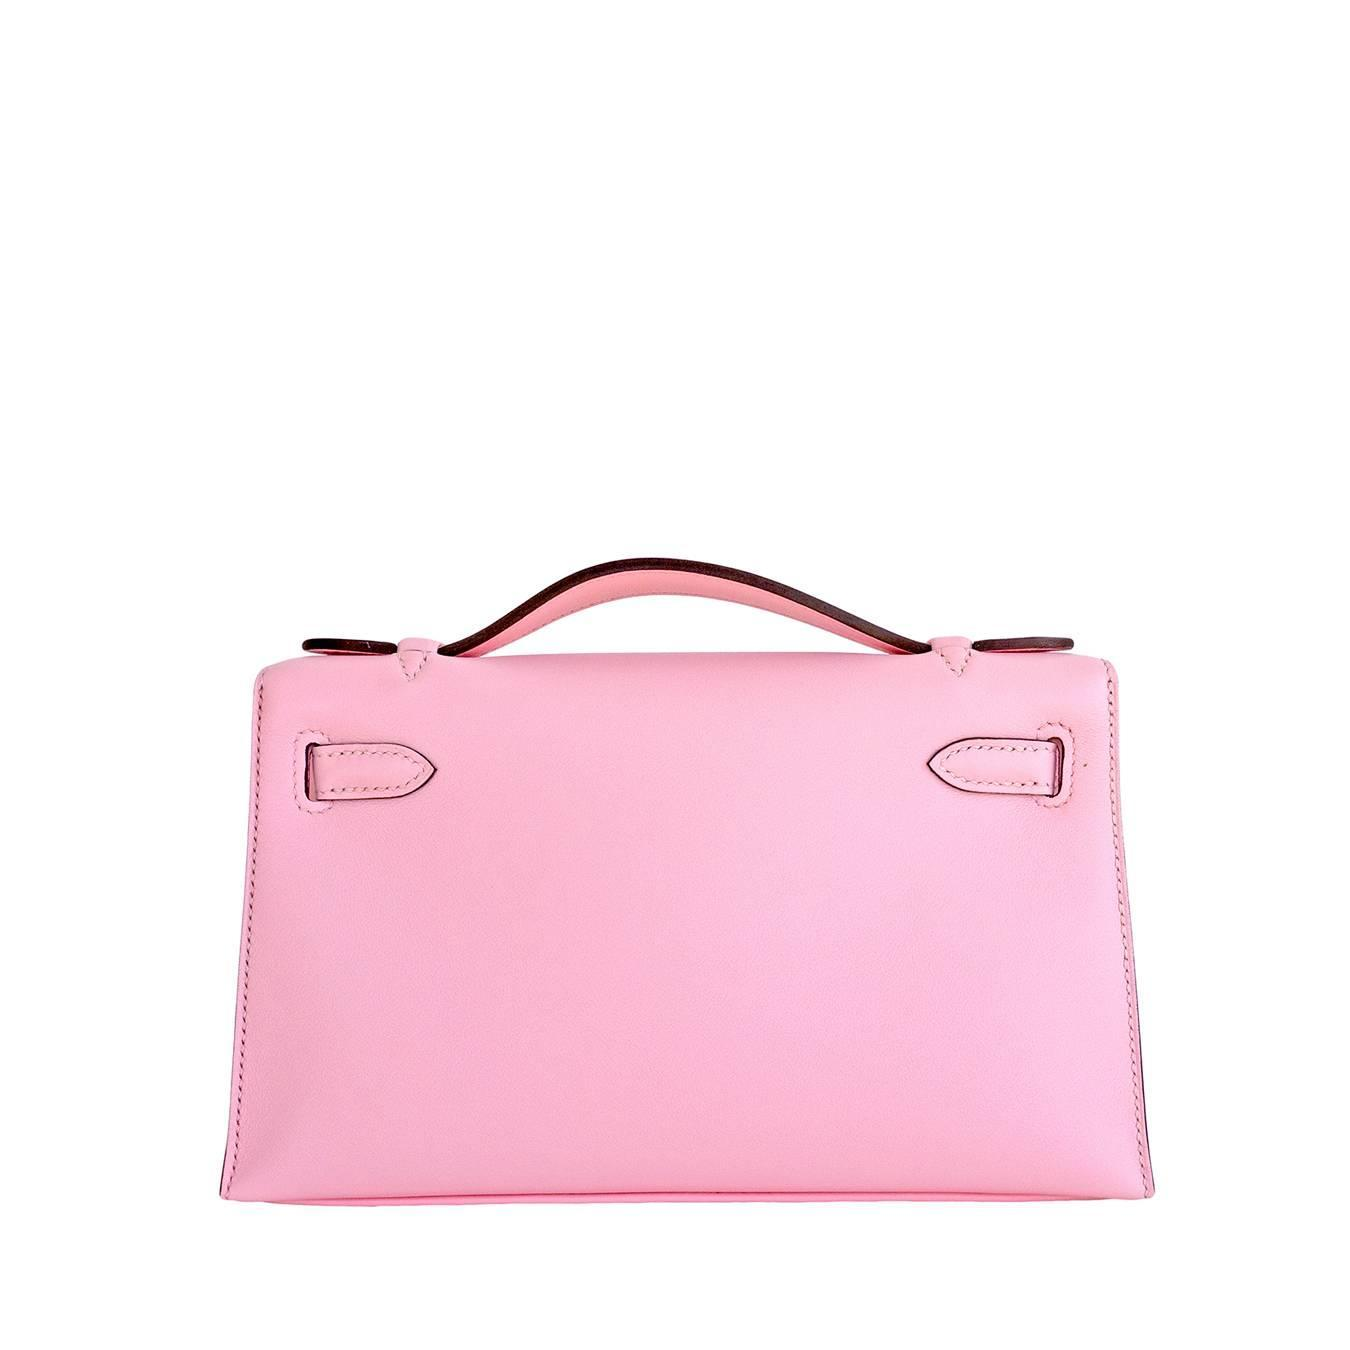 hermes inspired - hermes birkin bag 25cm rose sakura pink swift palladium hardware ...